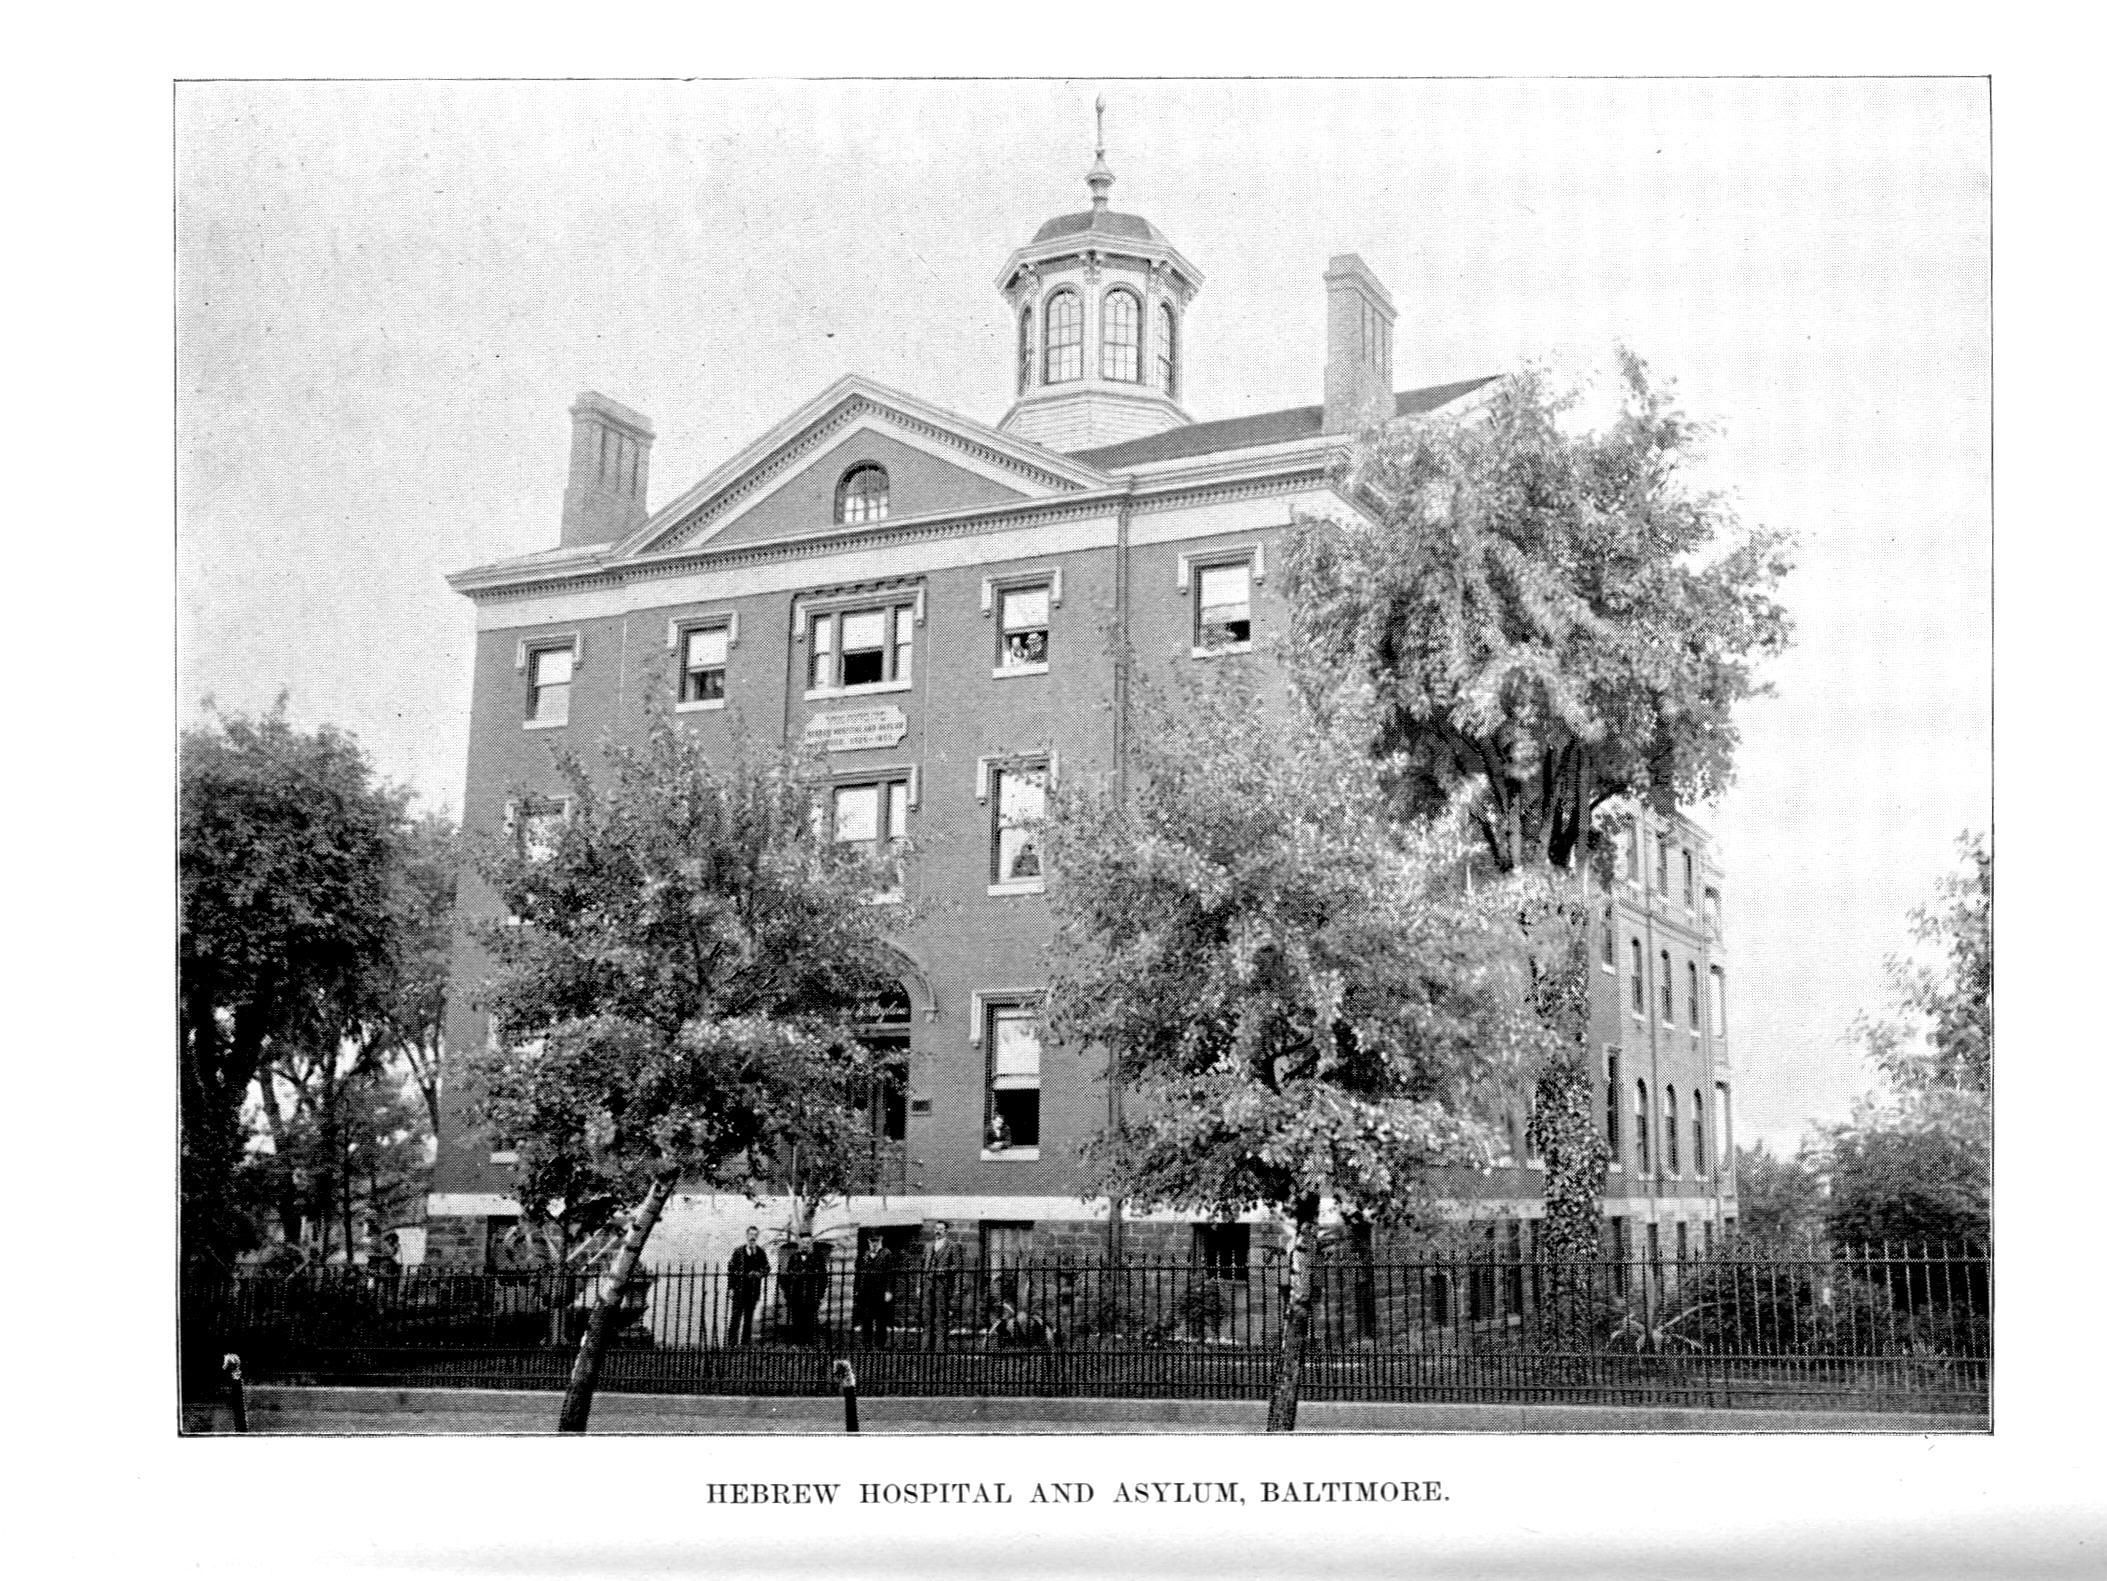 Hebrew Hospital and Asylum. Message of Frank Brown, Governor of Maryland, to the General Assembly at its Regular Session, January, 1894 (Baltimore: Wm. J.C. Dullany Company, 1894). Maryland State Archives